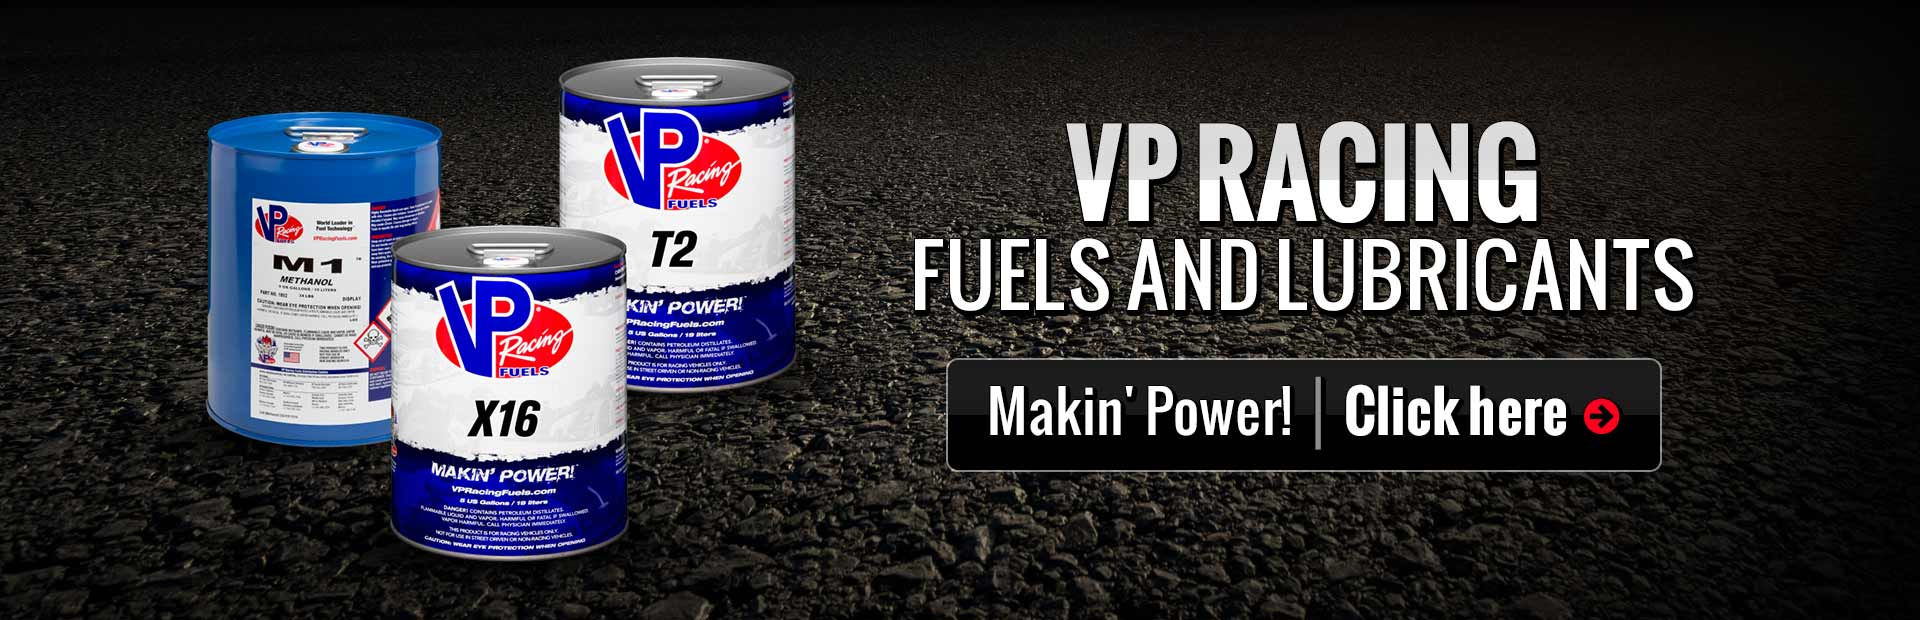 VP Racing Fuels and Lubricants: Click here to shop online.